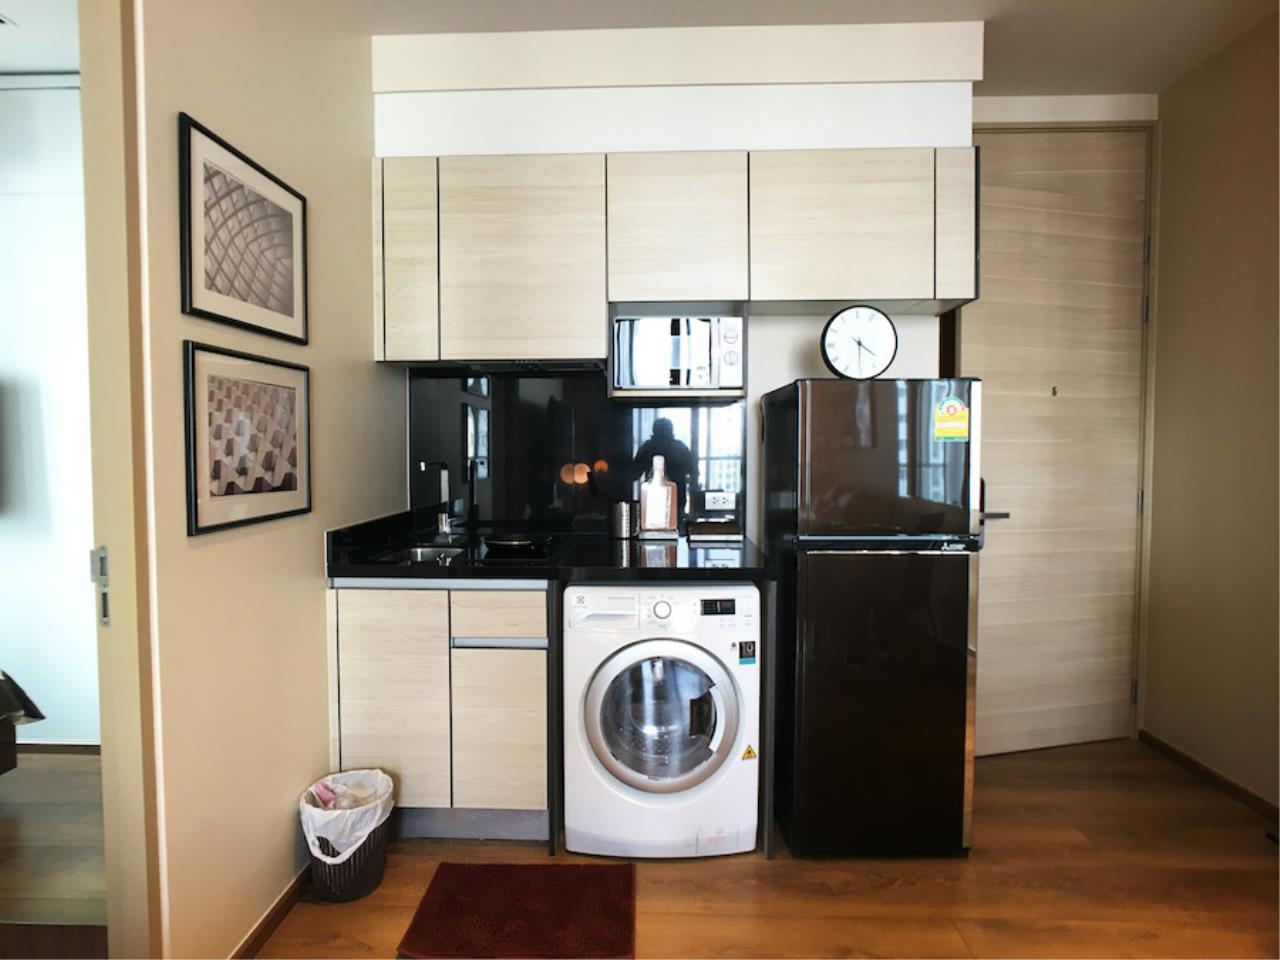 Agent - Phapayawarin Agency's Park 24 for Rent, 2 Bedroom 1 Bathroom, 55 Sq.m., BTS Phrom Phrong  3